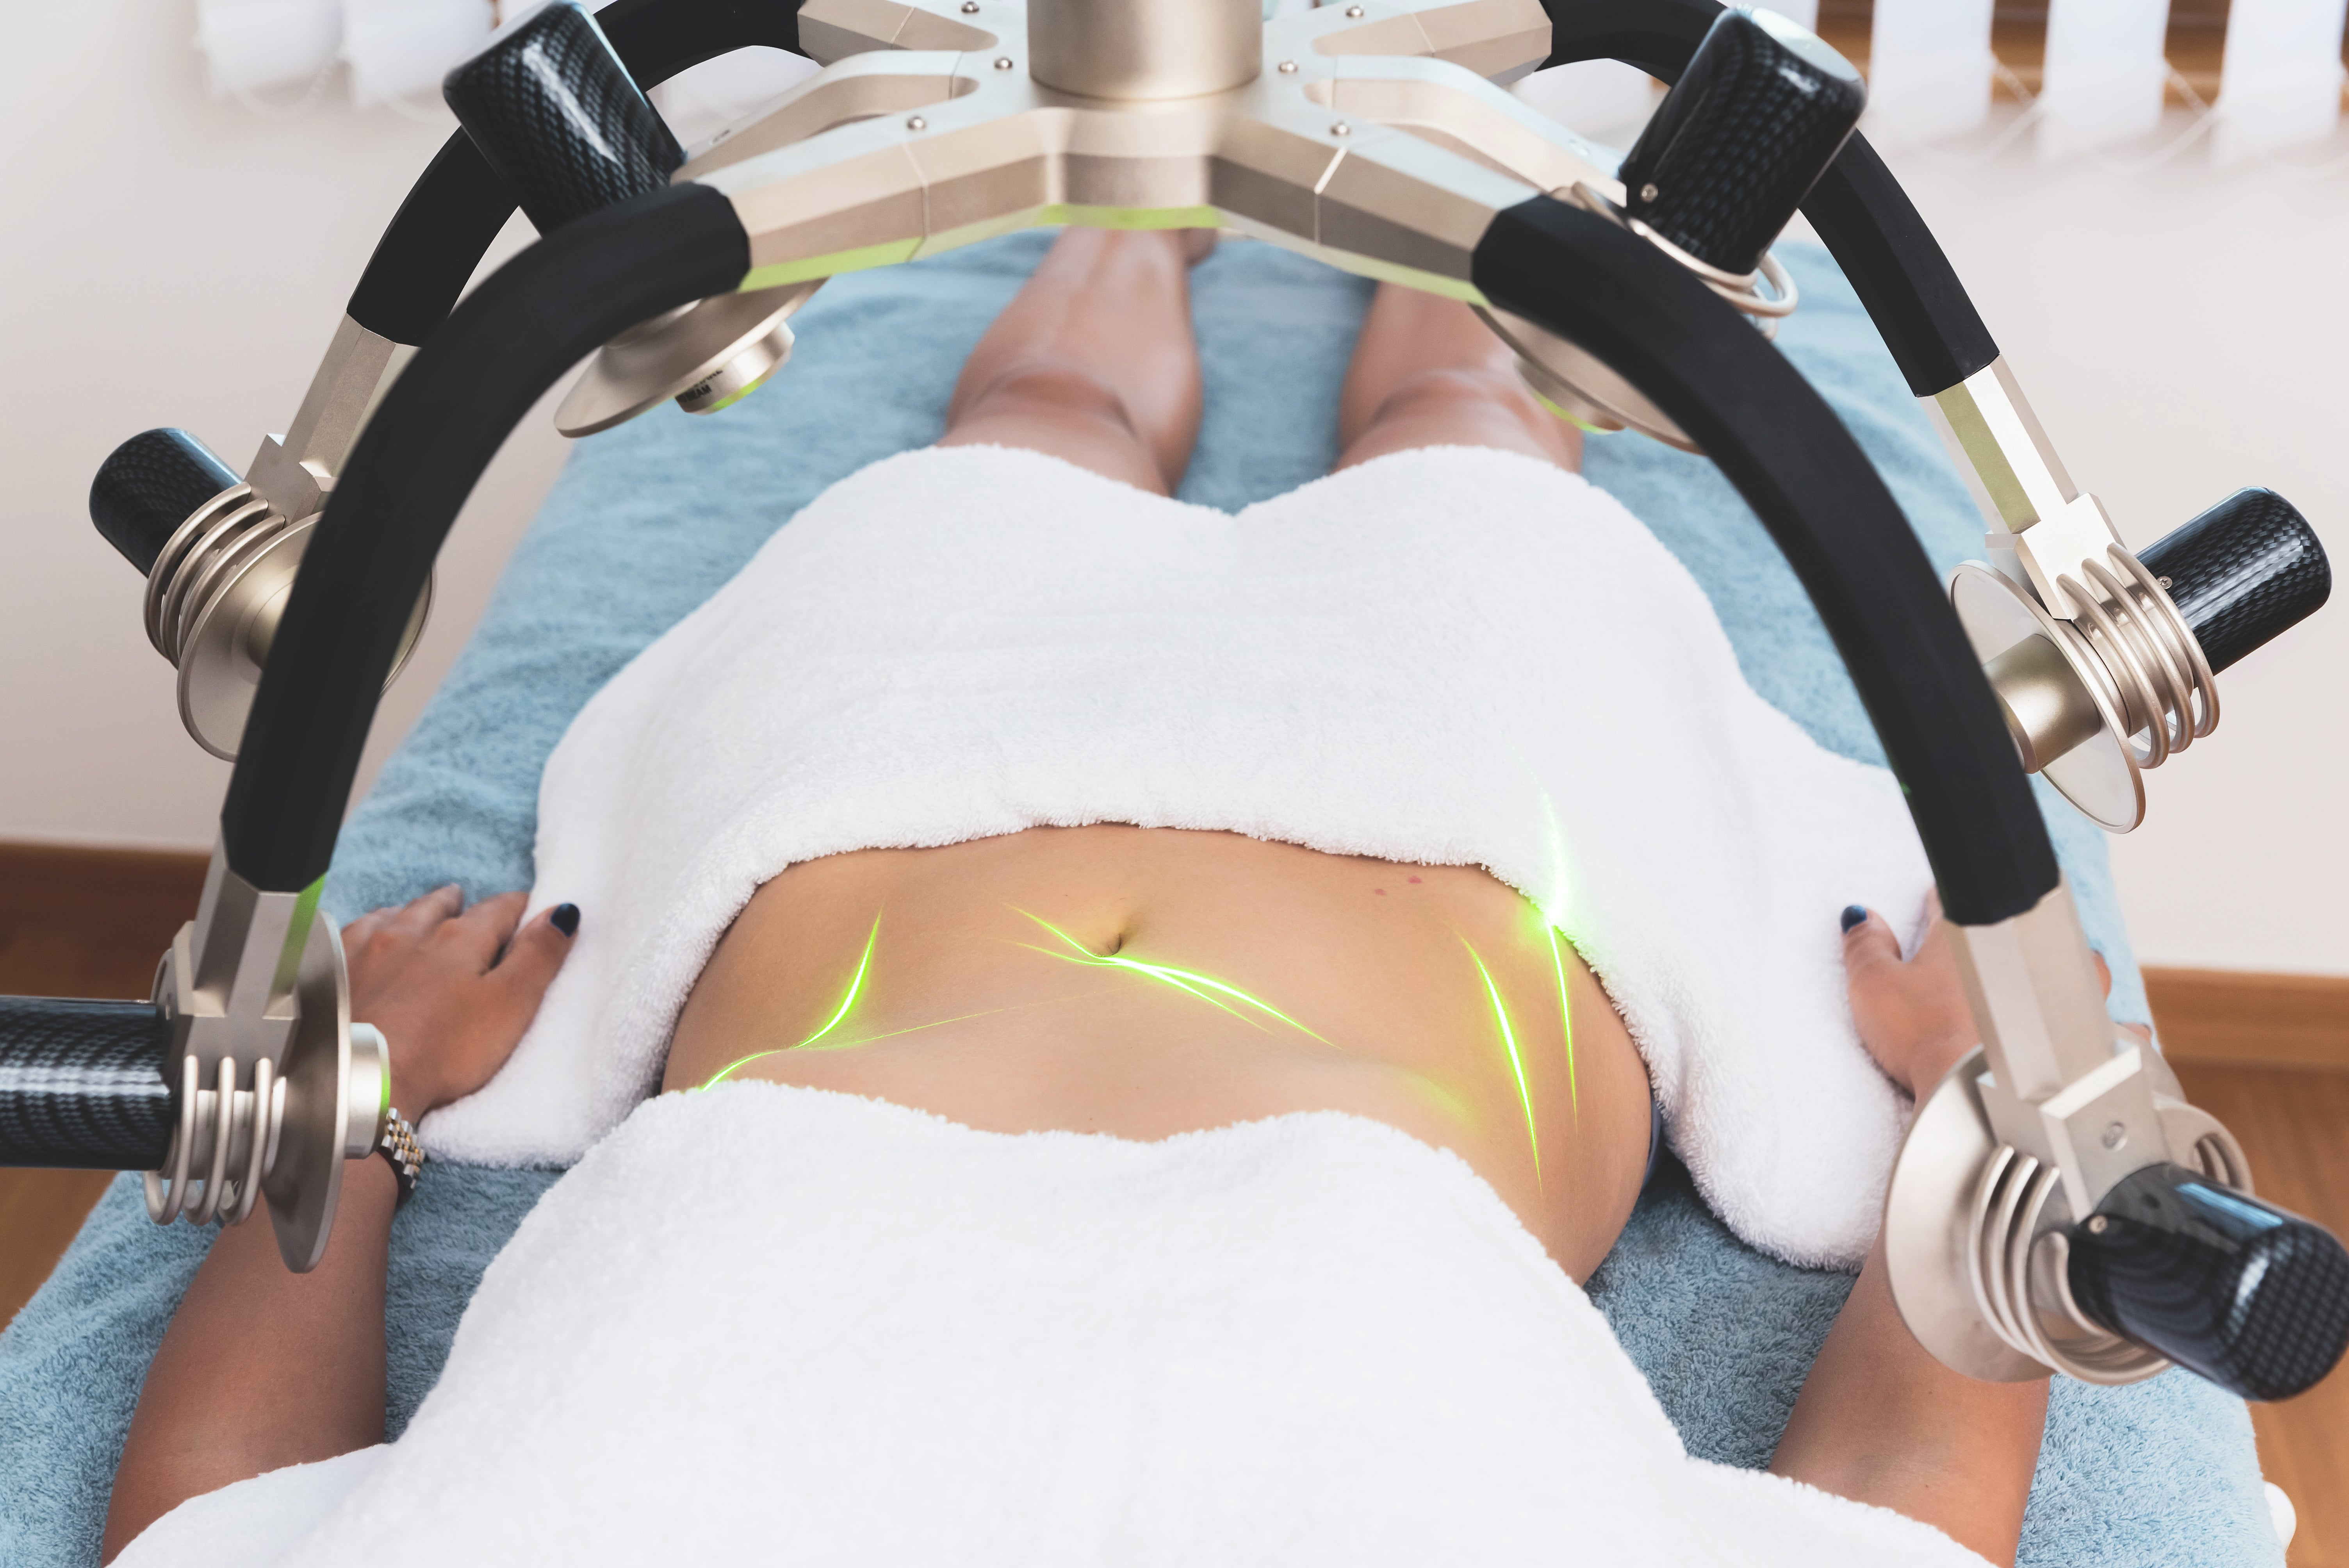 a patient receiving green laser therapy for fat loss